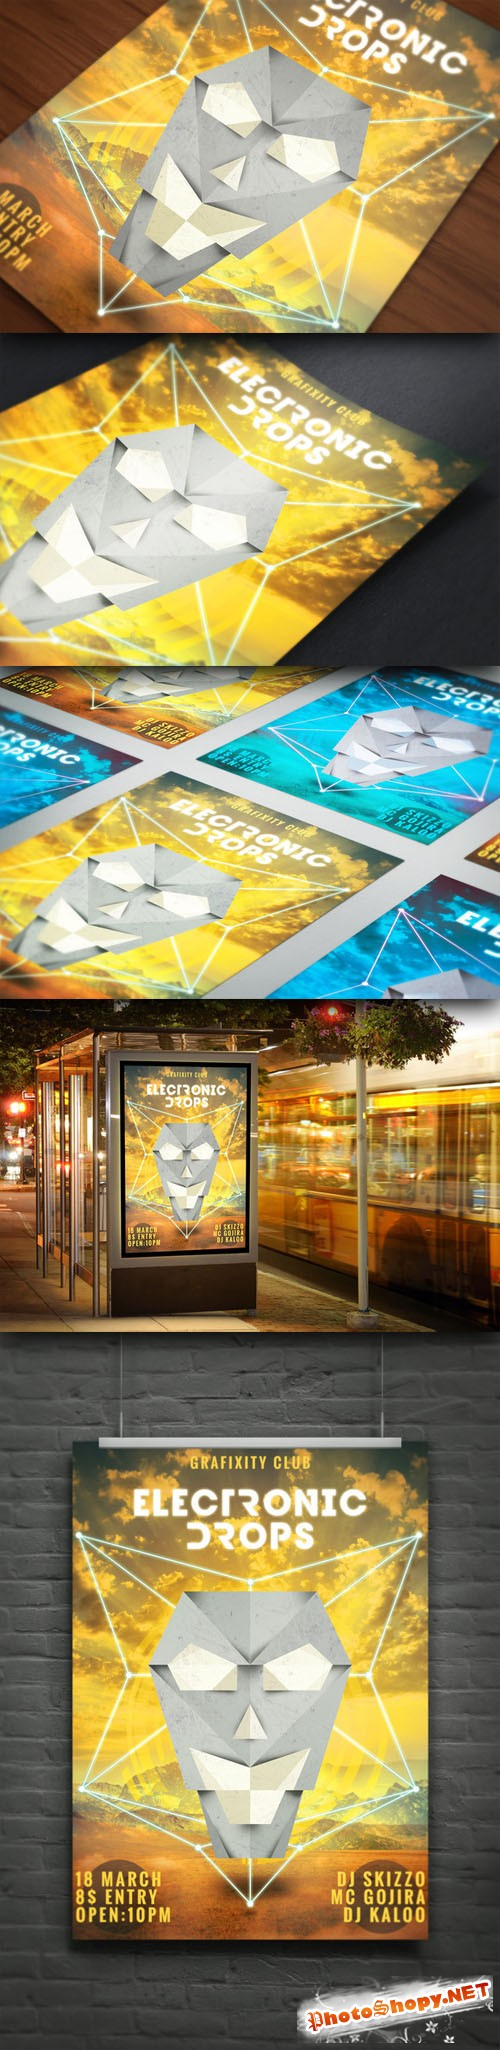 CreativeMarket - Electronic Music Poster